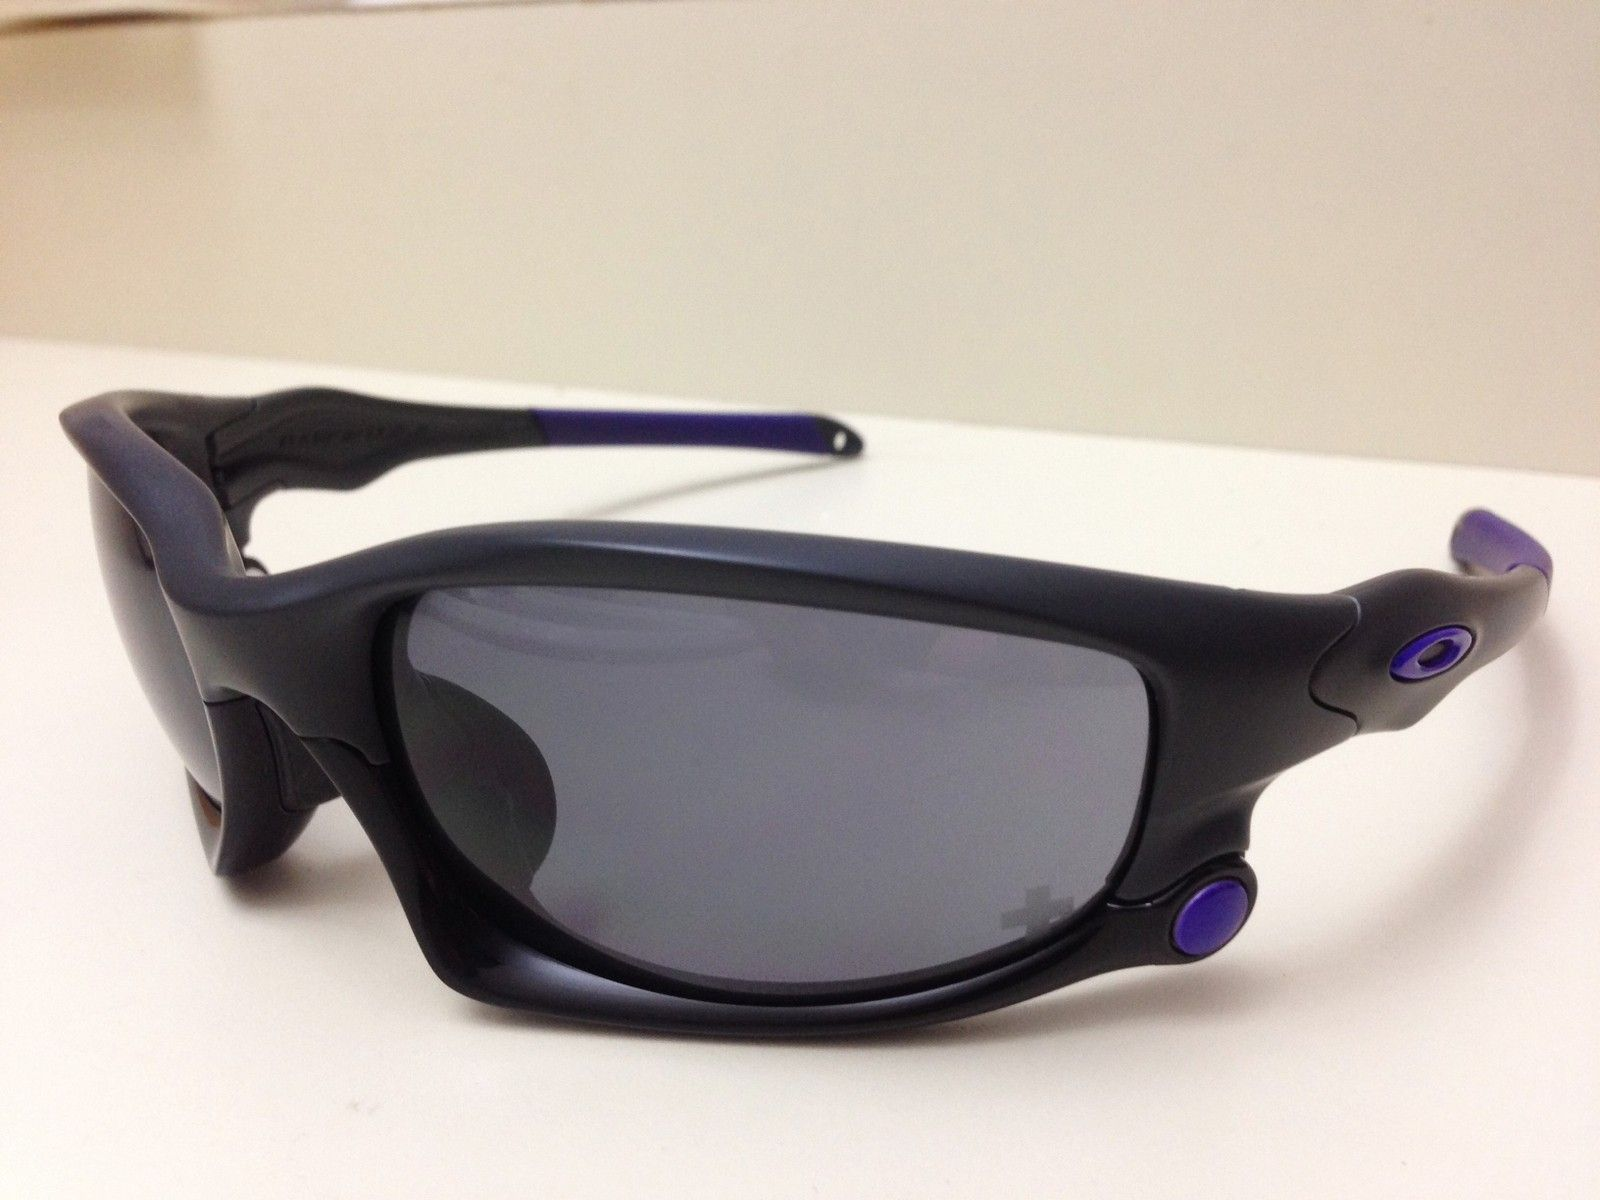 NEW OAKLEY INFINITE HERO SPLIT JACKET *REDUCED PRICE* - IMG_5661.JPG